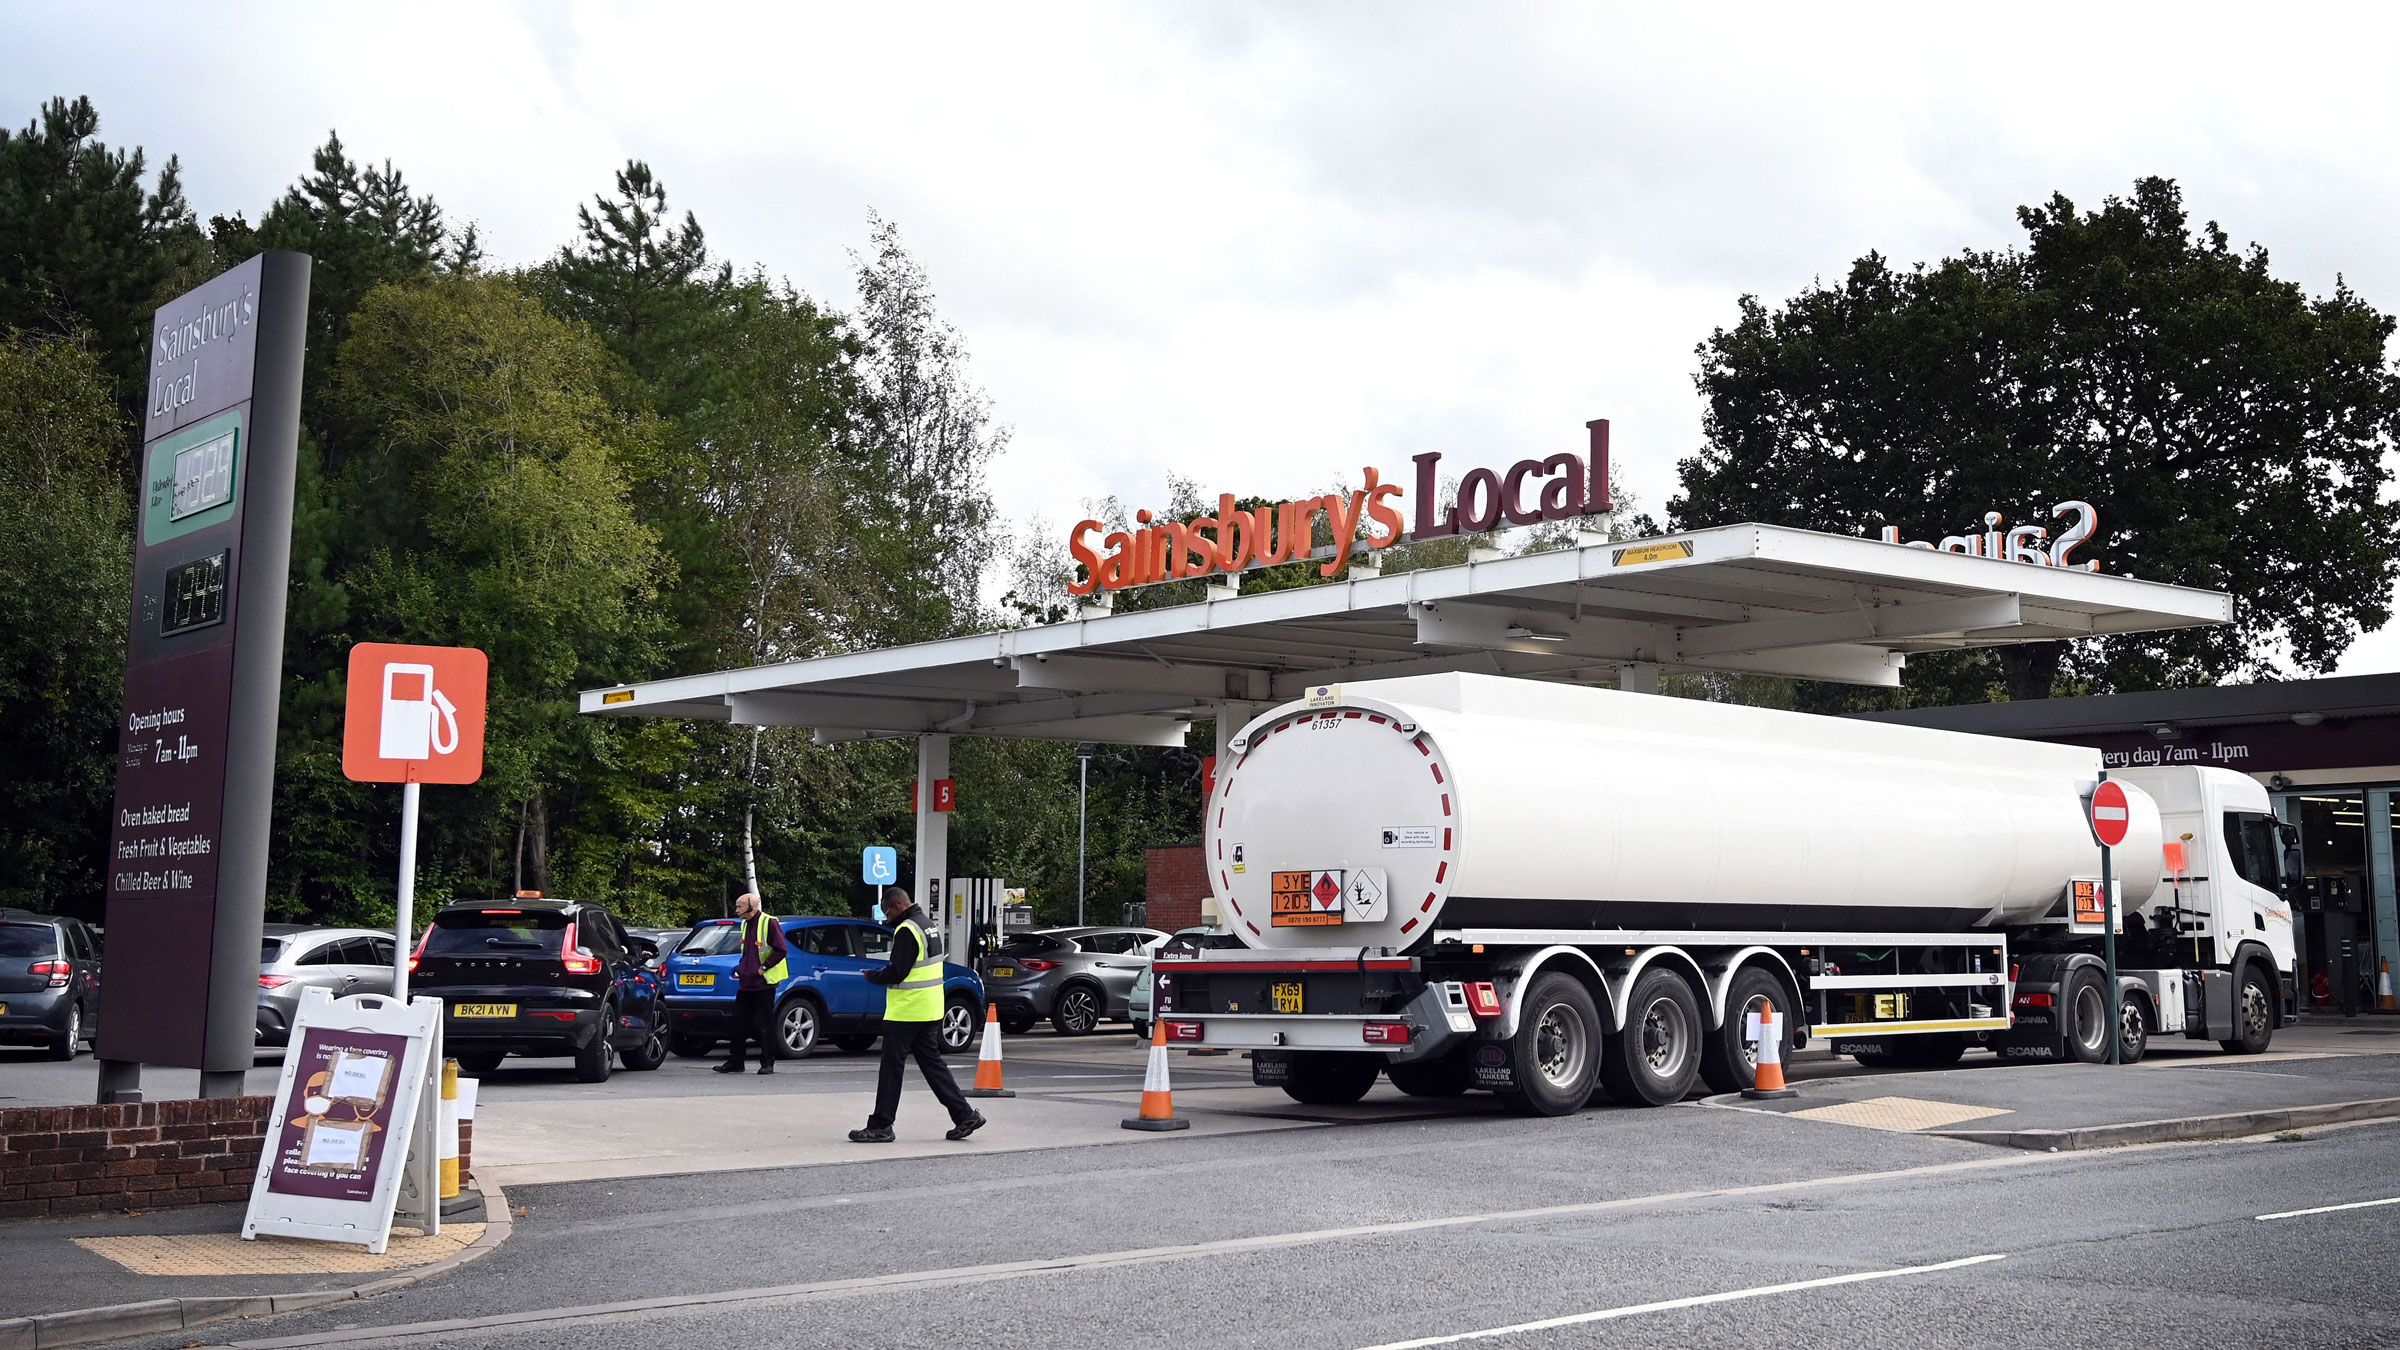 A fuel tanker arrives to replenish stocks at a gas station in Coventry, England, on Tuesday.